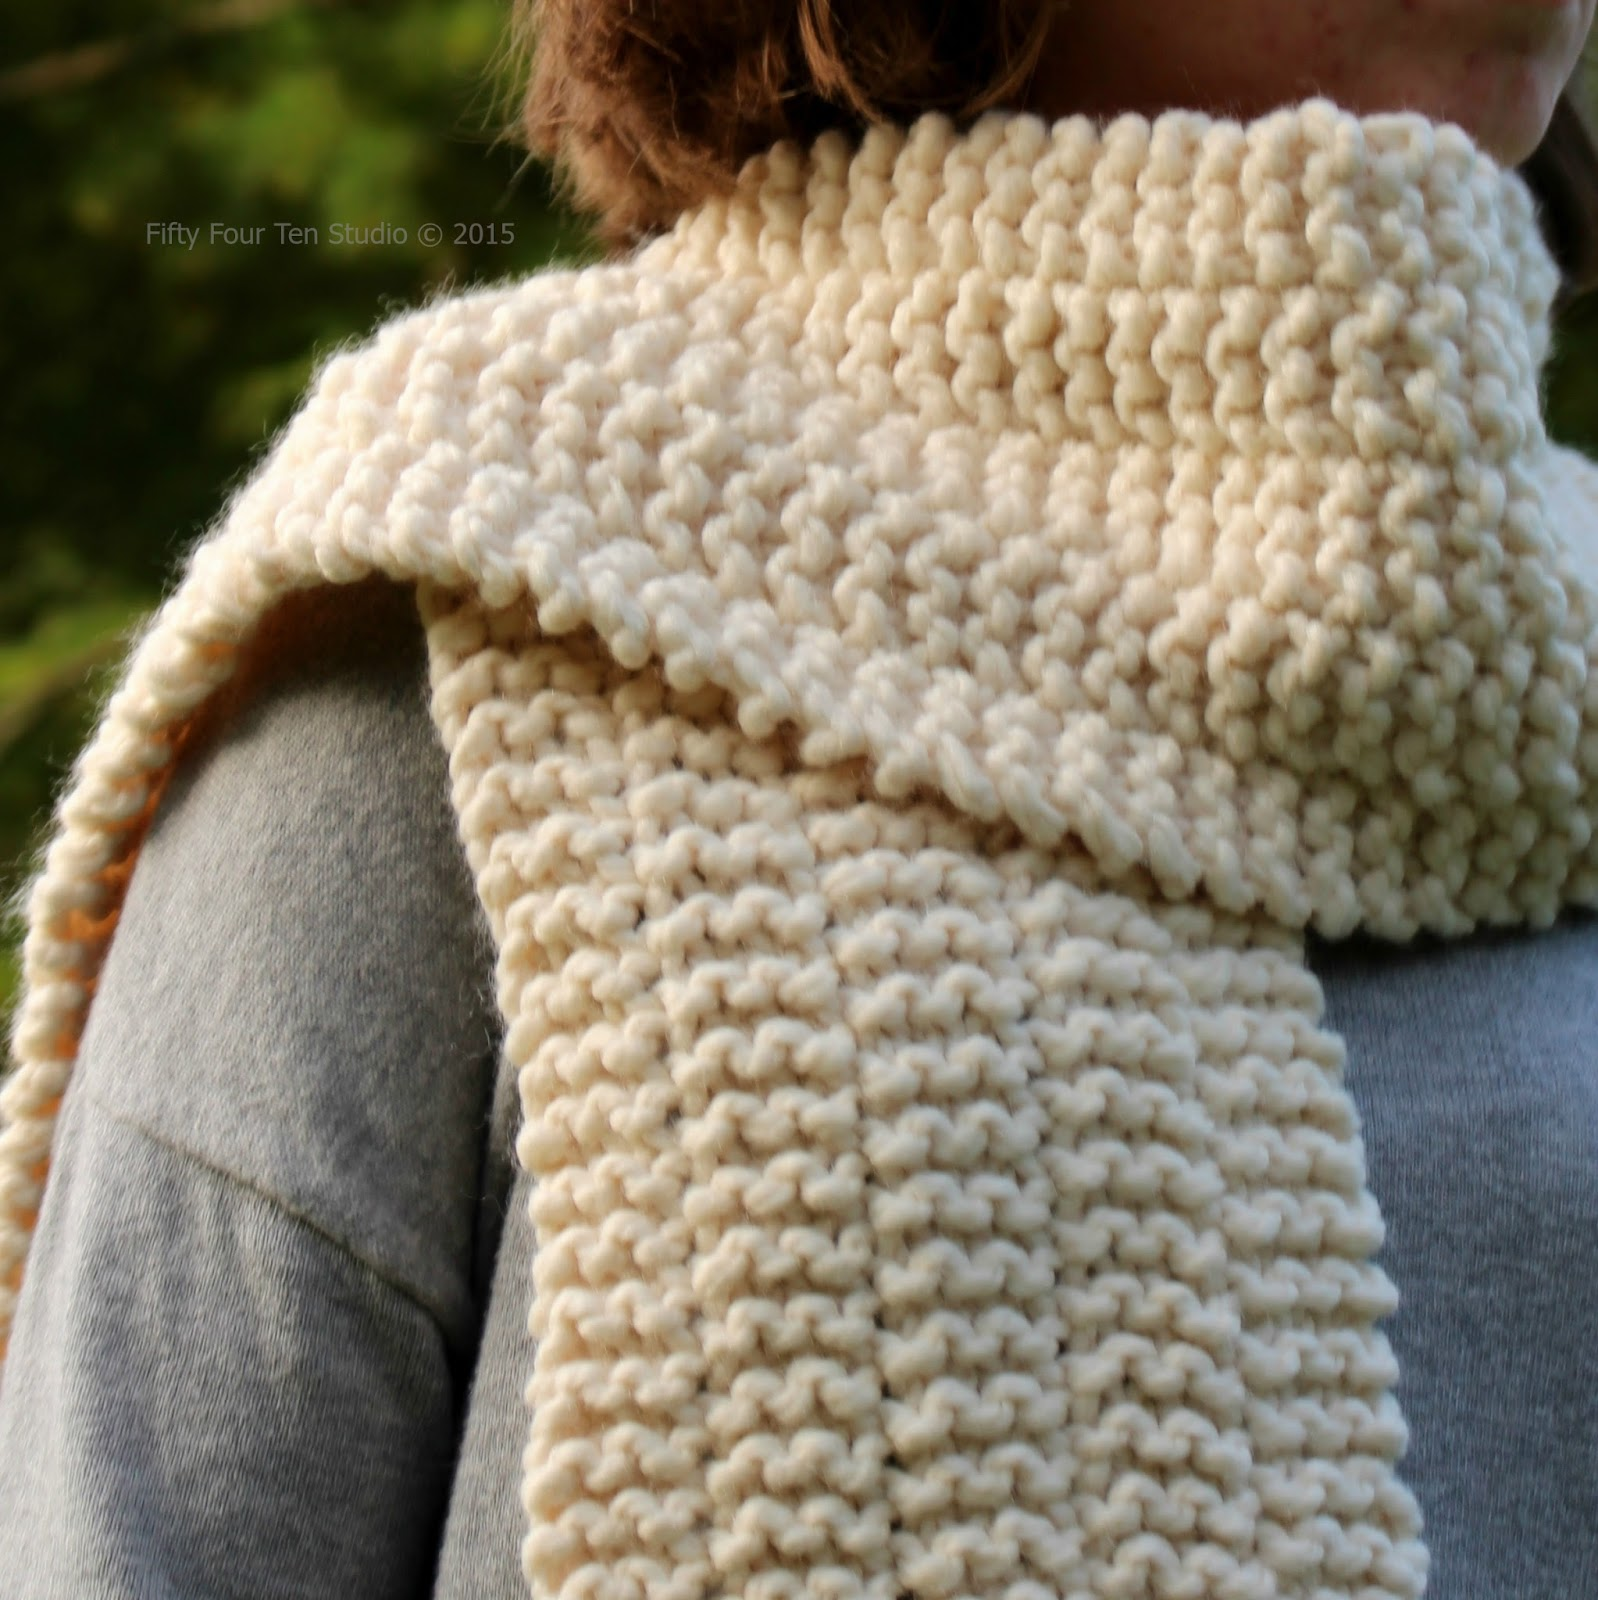 Fifty Four Ten Studio: New Easy Scarf Knitting Pattern